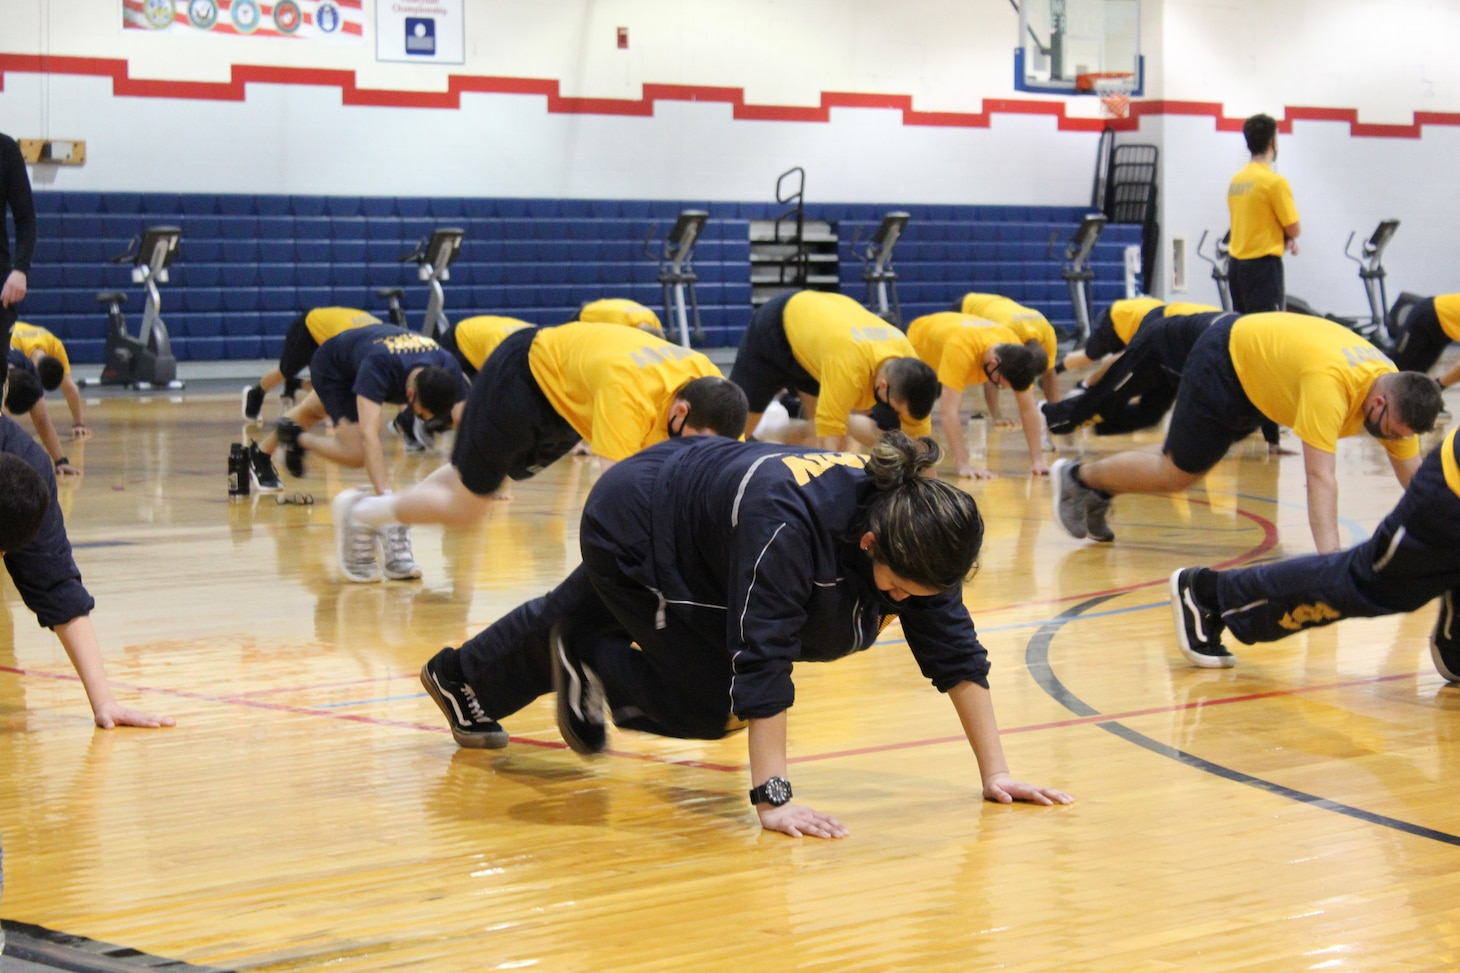 GREAT LAKES, Ill. (March 8, 2021) Training Support Center (TSC) Great Lakes Command Fitness Leaders (CFL) and fitness specialists implementing physical fitness efforts following pause due to COVID 19. Physical training will be conducted, adhering to virus mitigation rules, by CFL and TSC staff volunteers utilizing Navy Operational Fitness and Fueling Series (NOFFS) and authorized Navy Fitness routines.  (U.S. Navy photo by FCSA Elizabeth Jordan /Released)